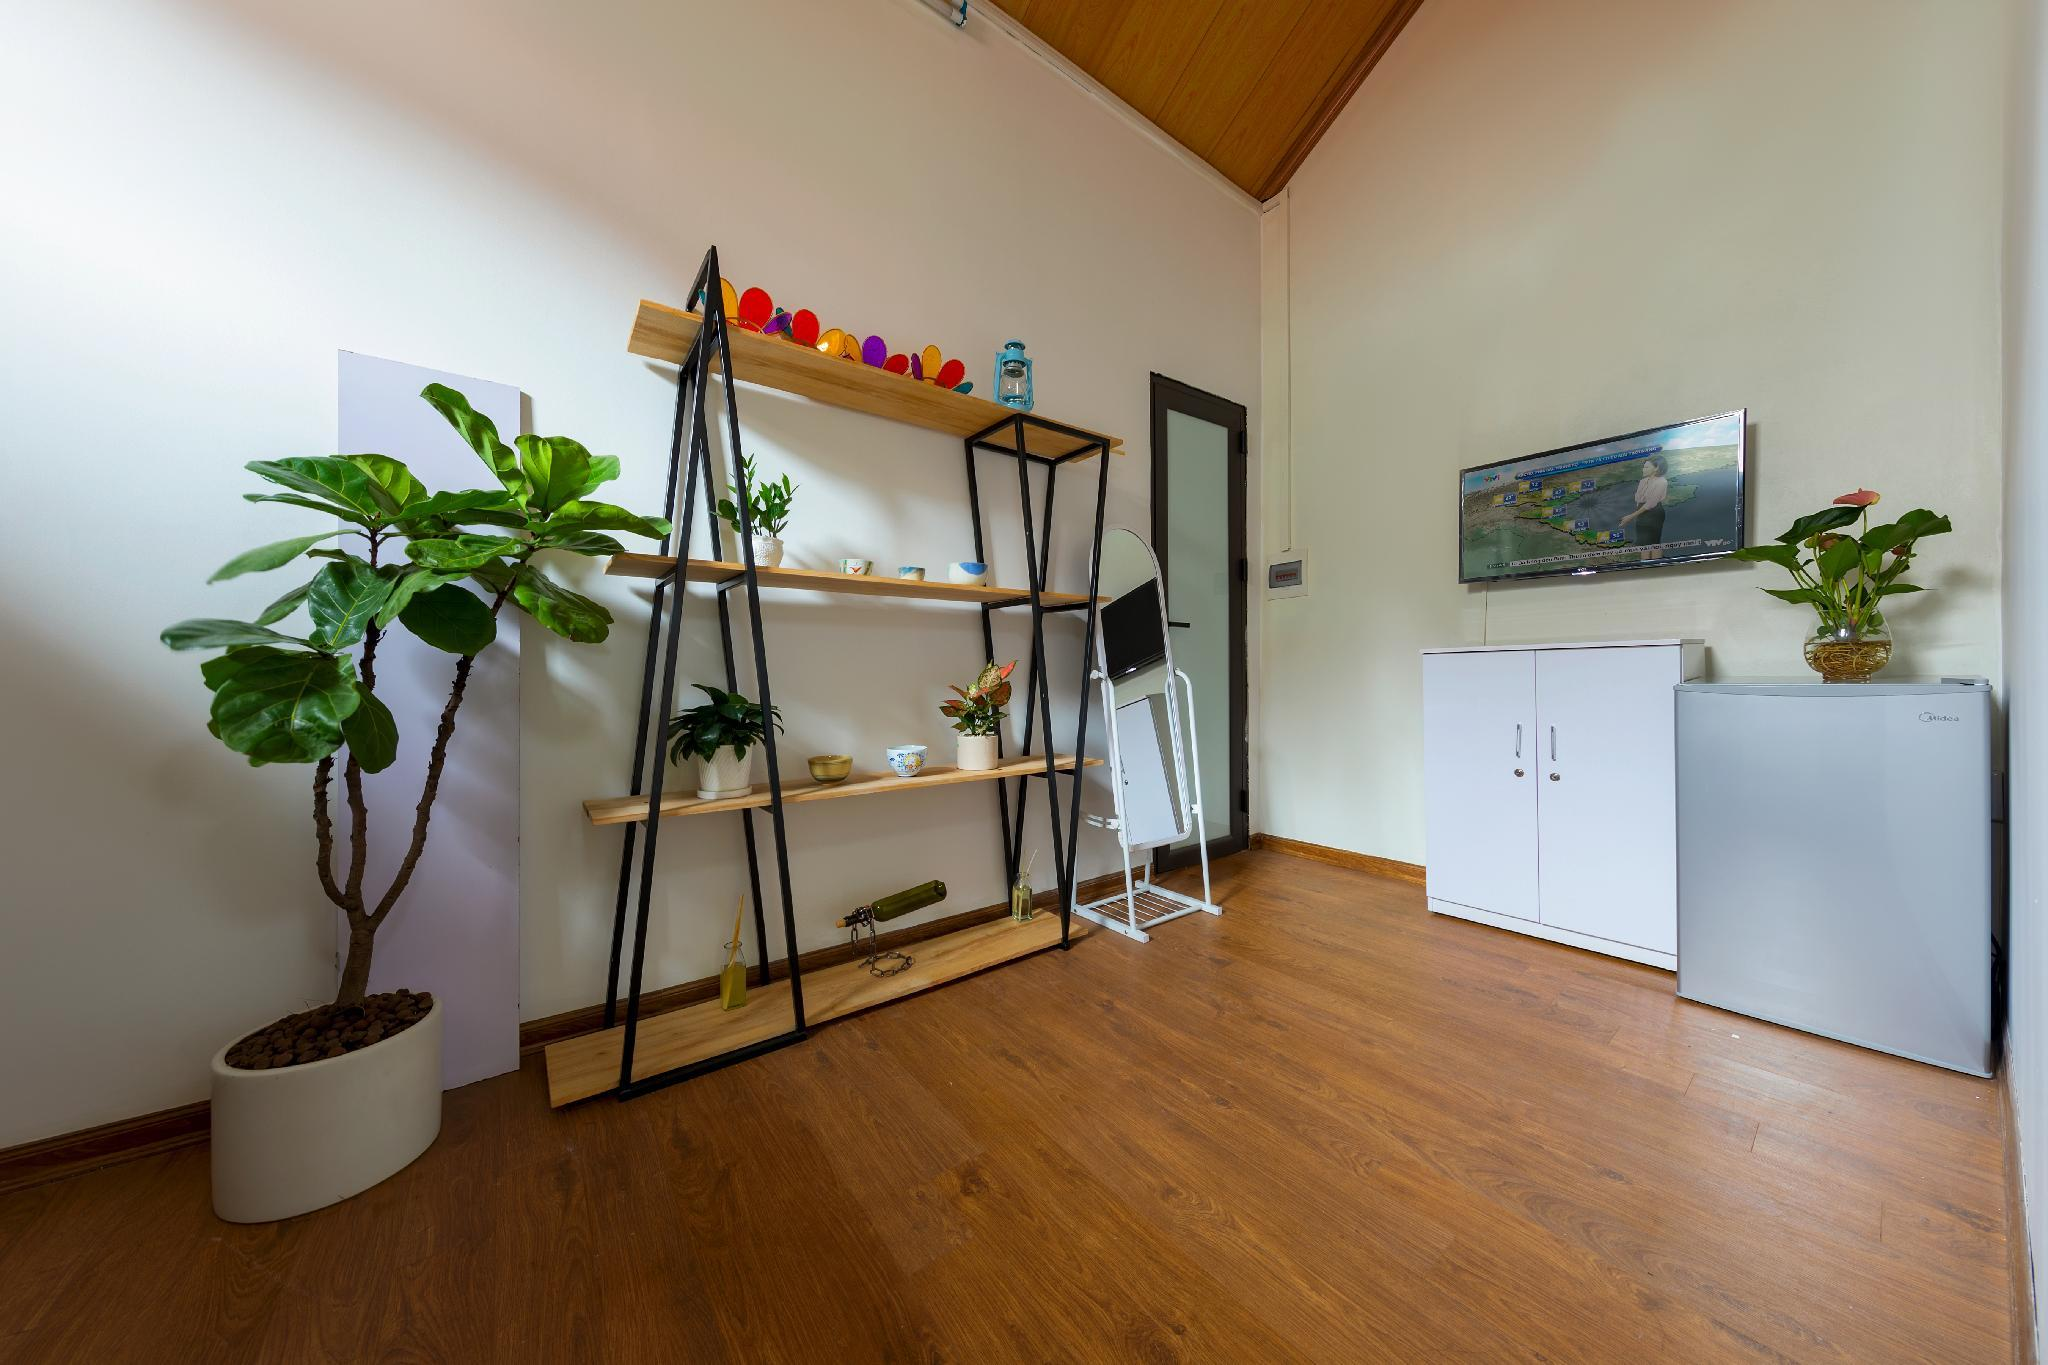 4beds  Entire Flat In Central Hanoi Old Quarter